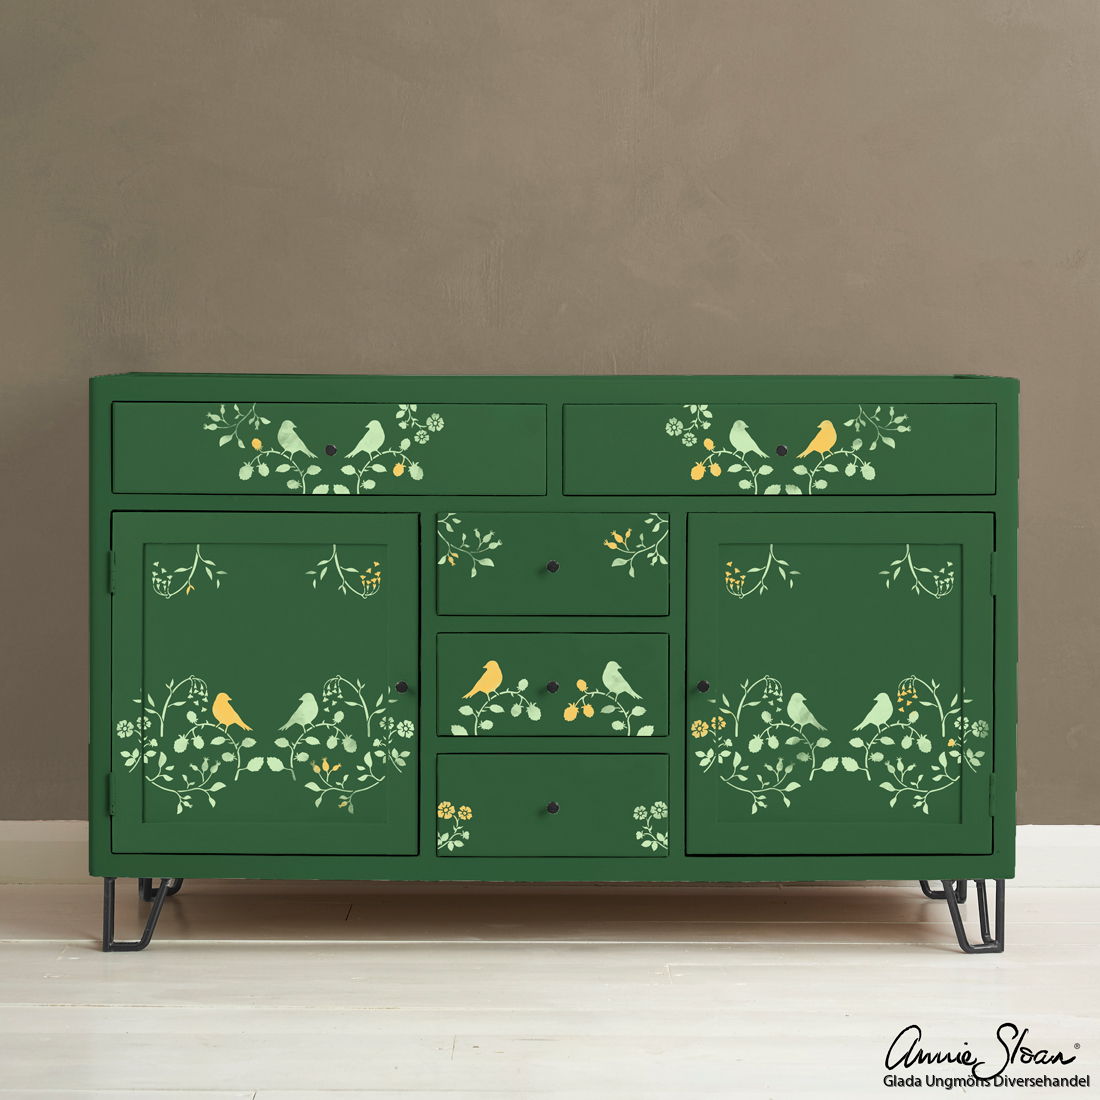 Countryside-Bird-Stencil-Furniture-Amsterdam-Green,-Lem-Lem,-Tilton